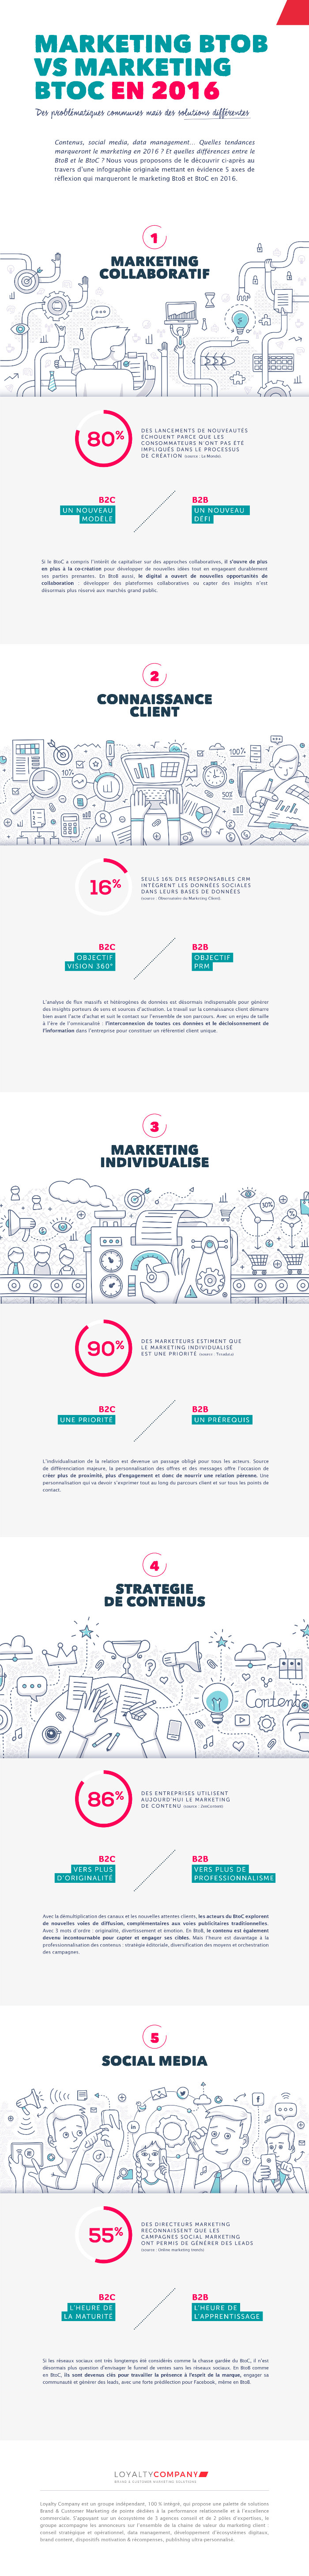 tendances-Marketing-BtoB-vs-BtoC